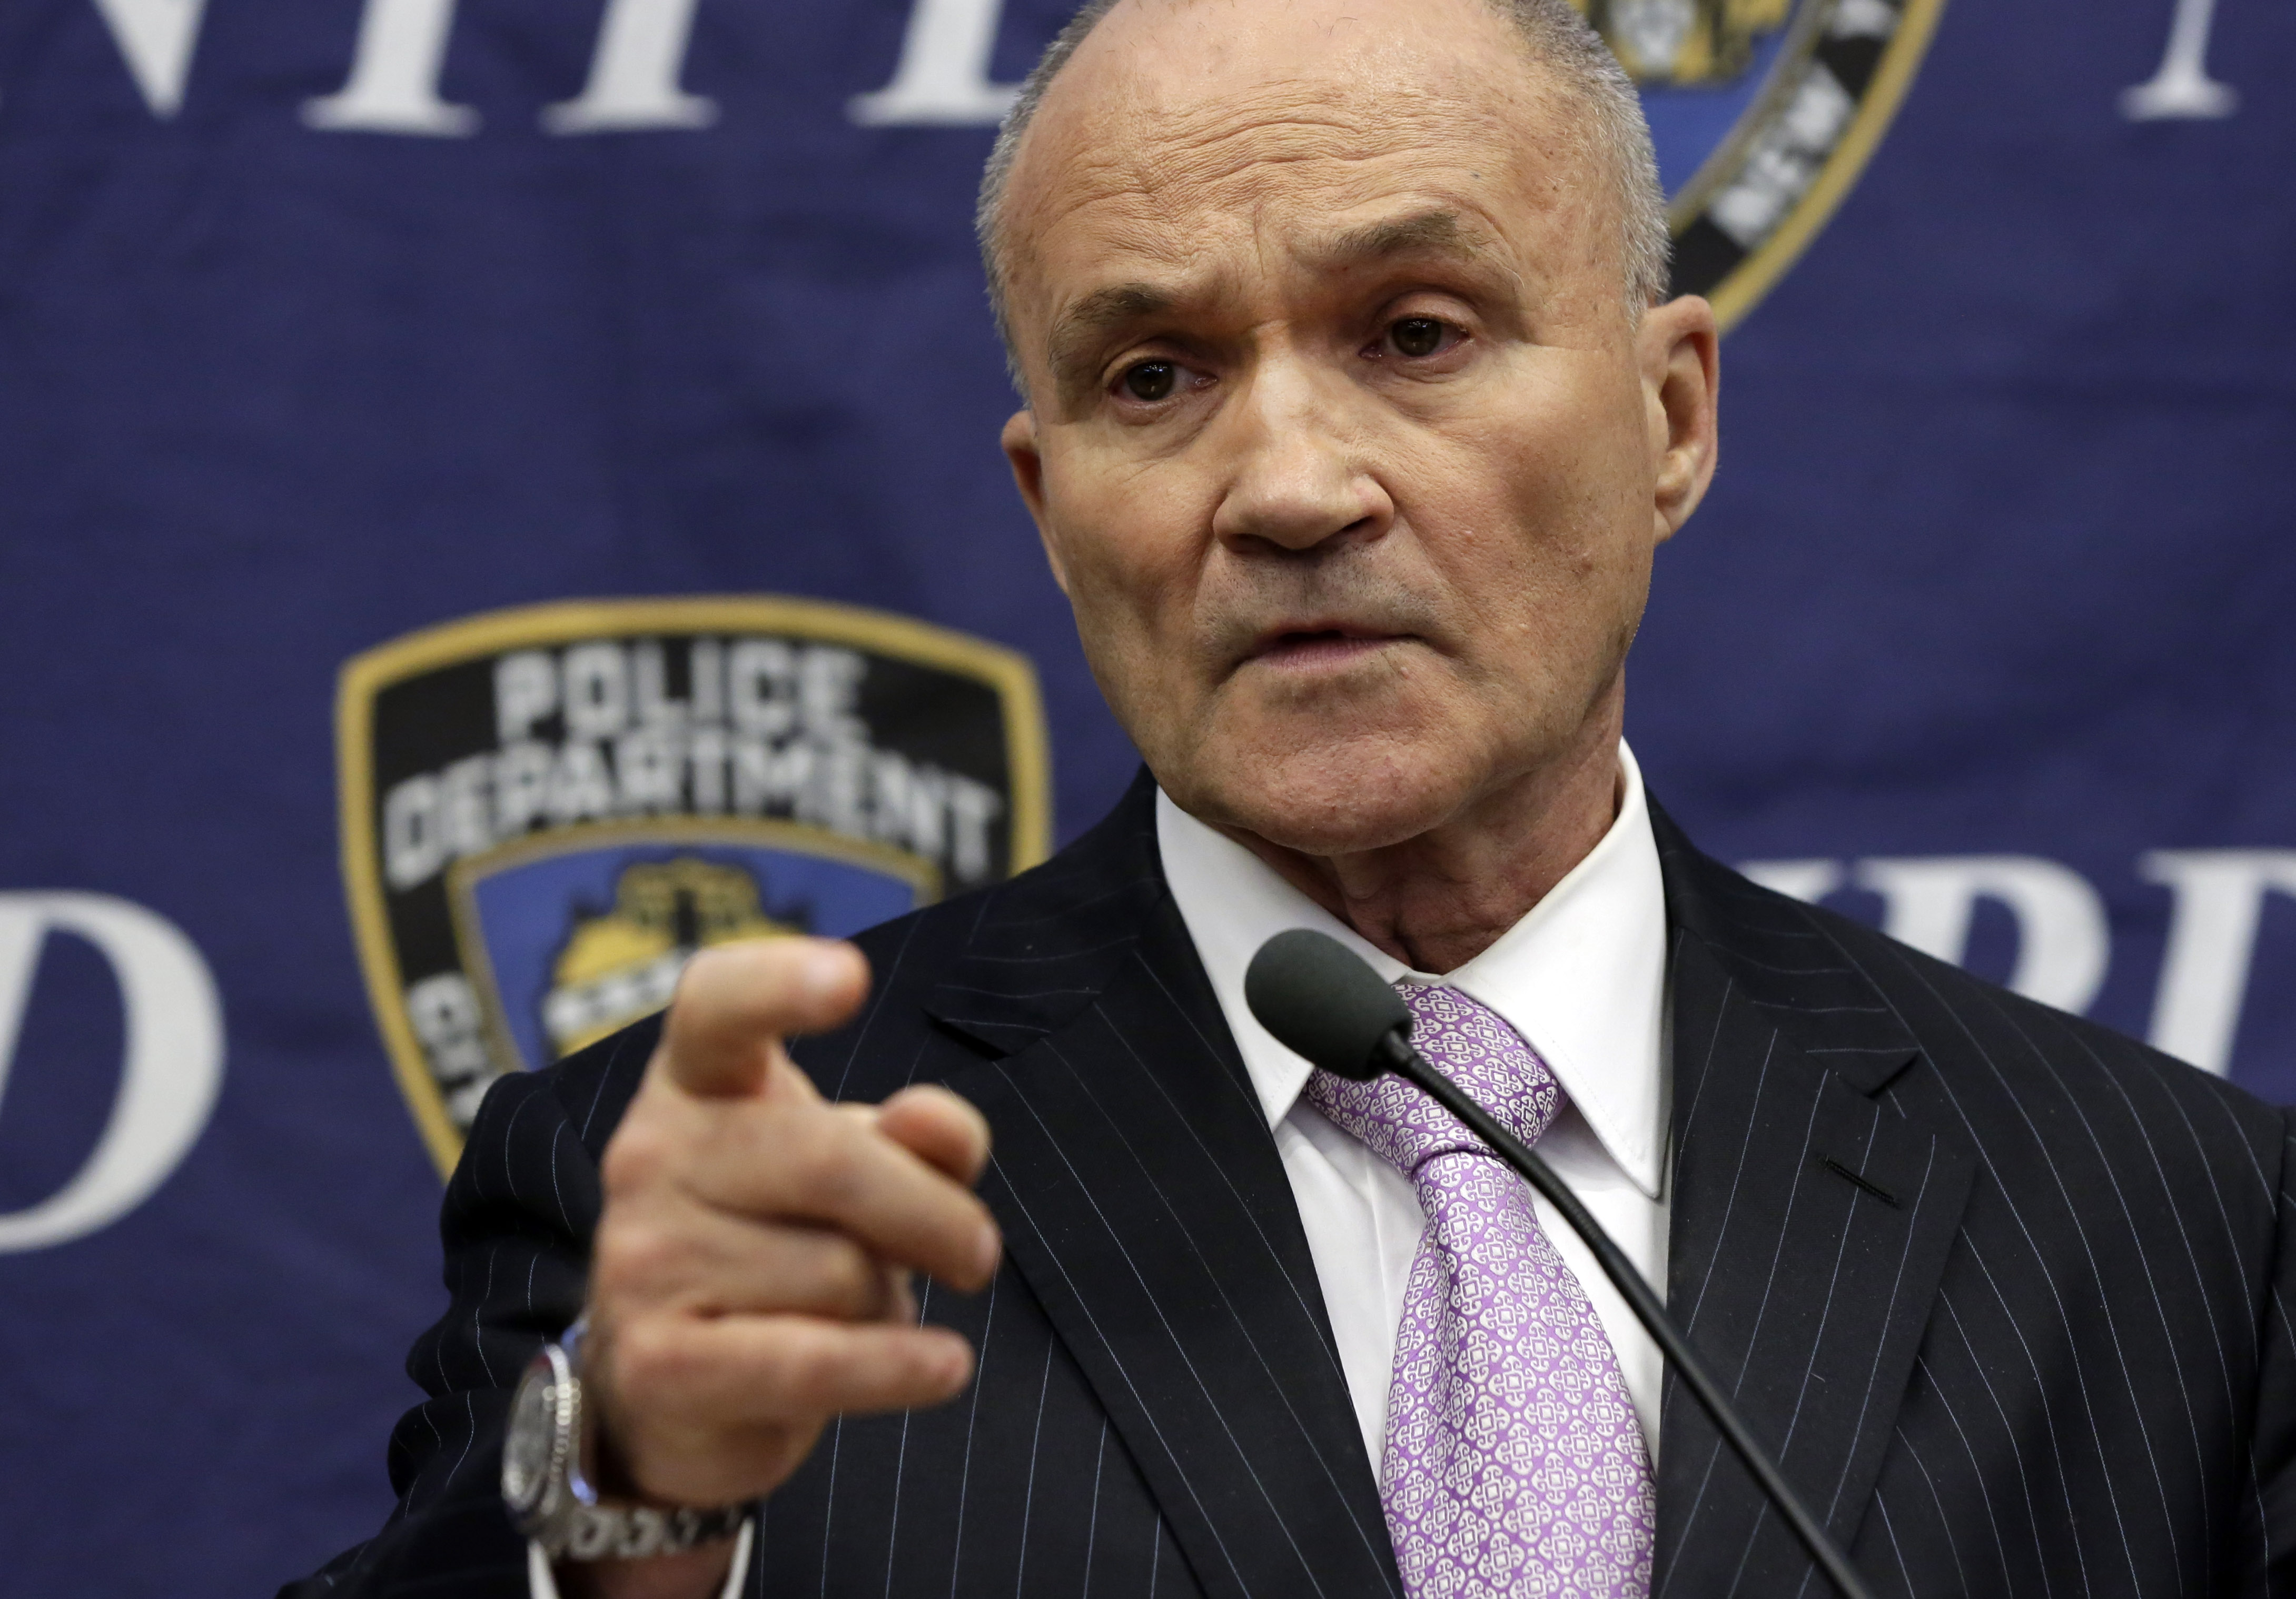 Former New York City Police Commissioner Raymond Kelly responds to a question about his department's stop-and-frisk policy, during a news conference Nov. 1, 2013. In a new book, Kelly criticizes New York City Mayor Bill de Blasio for limiting the policing tactic.